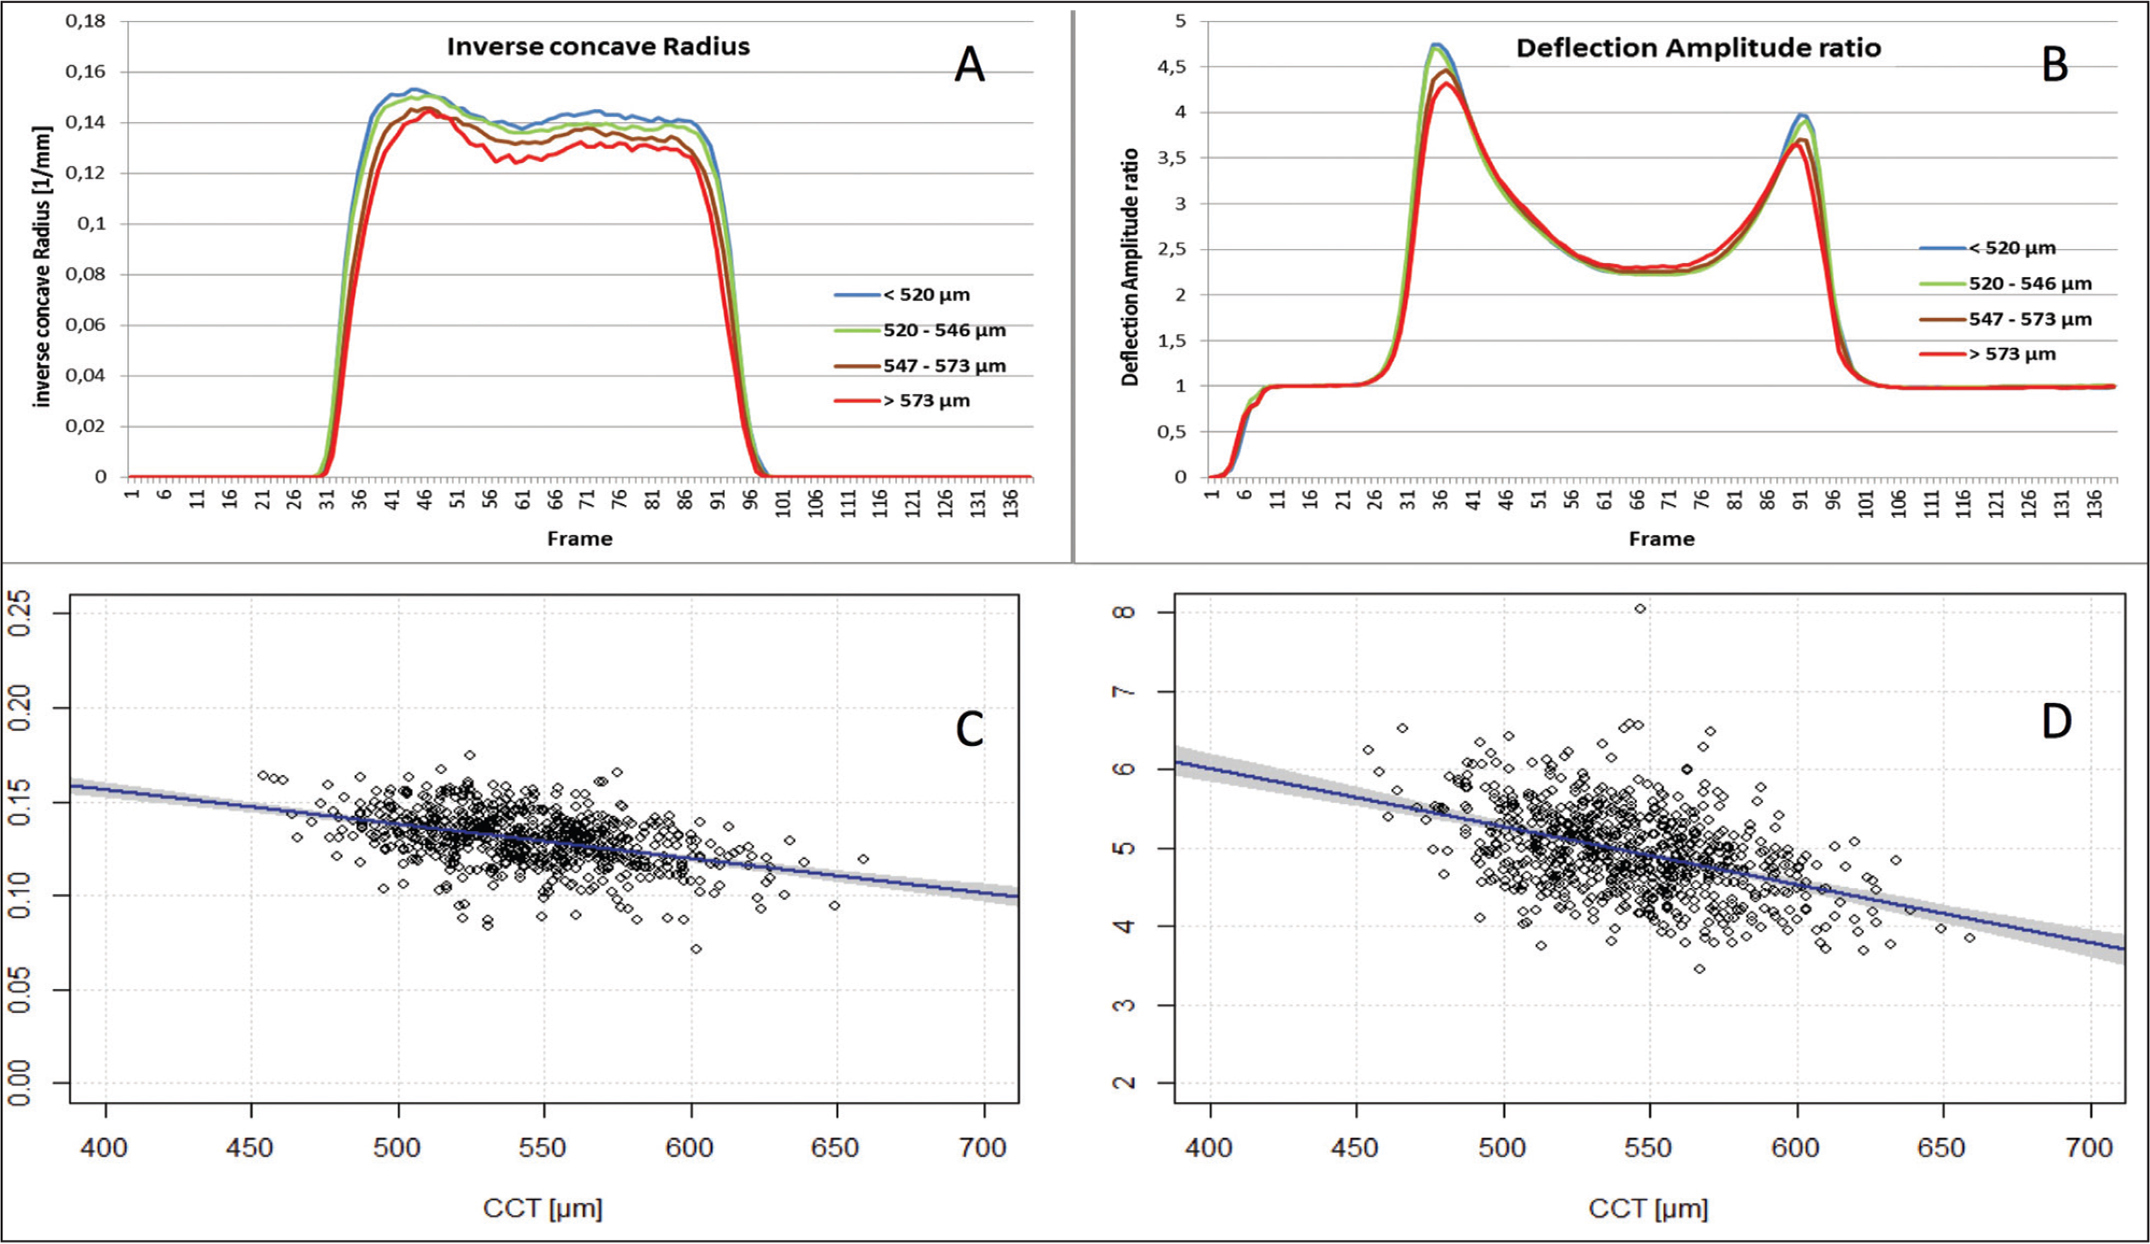 �A;Mean curves and scatter plot for the different subgroups of (A and C) inverse concave radius and (B and D) deflection amplitude ratio with regard to pachymetry. CCT = central corneal thickness